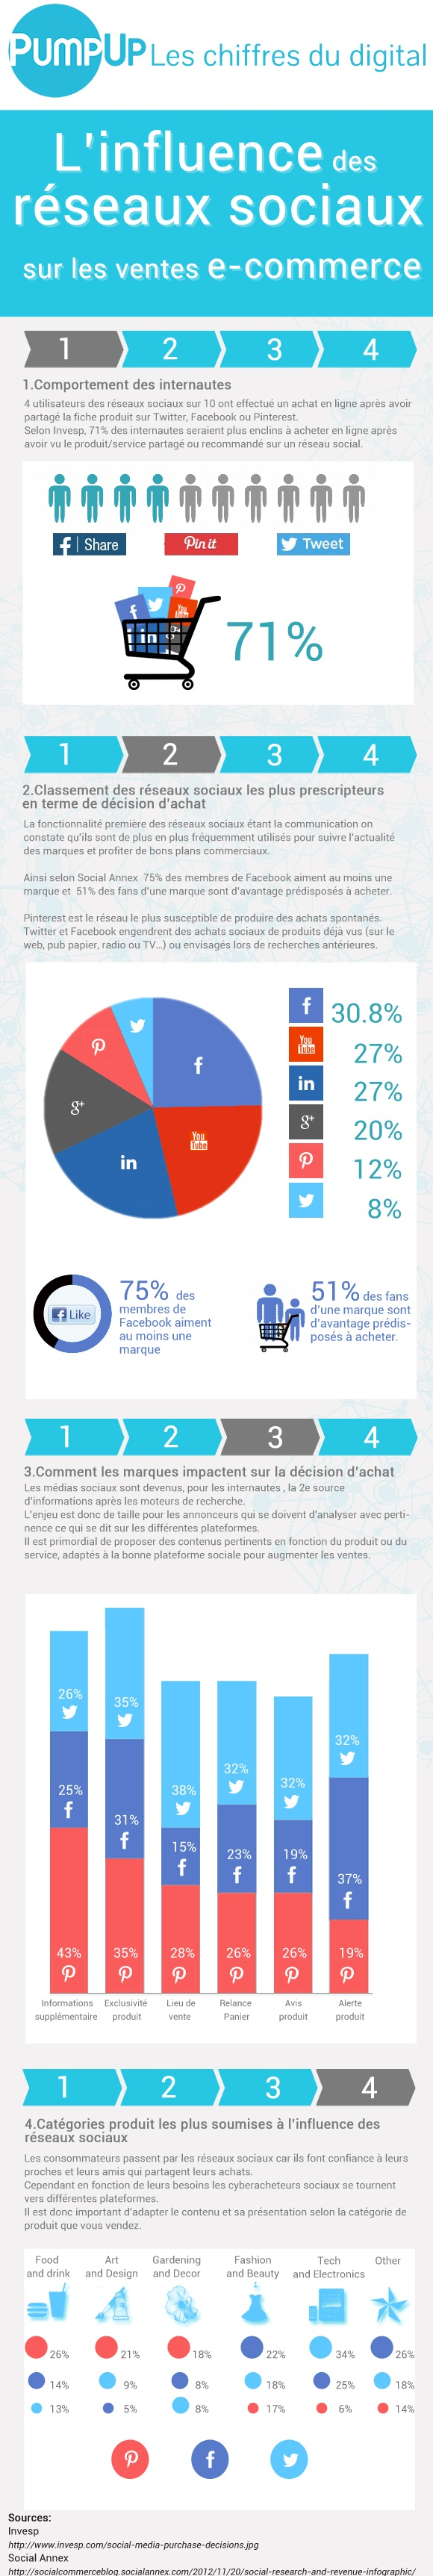 Chiffre-cles-smo-influence